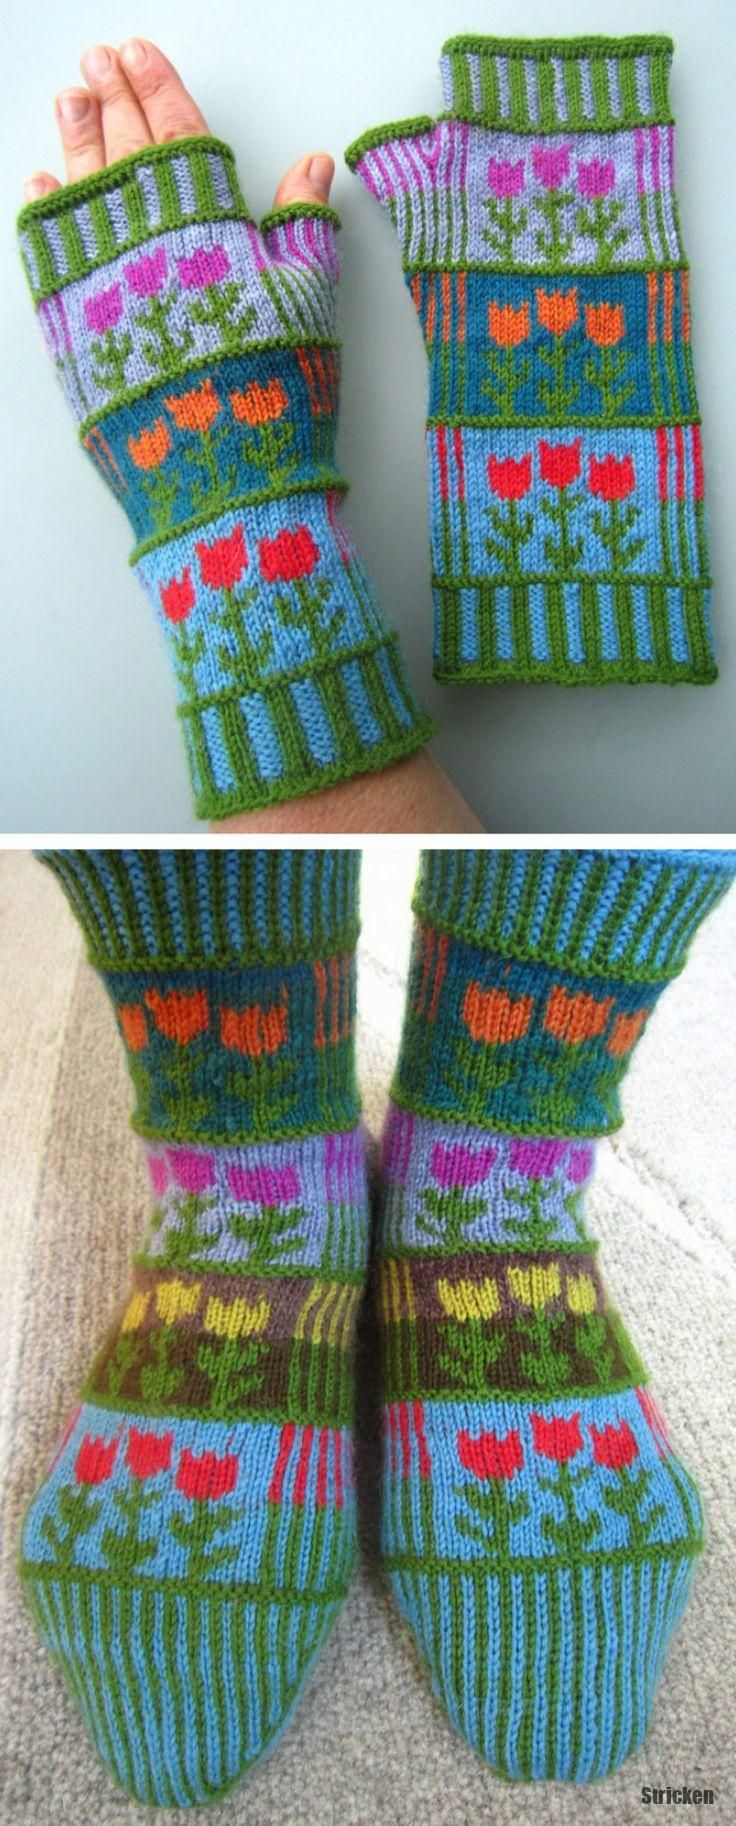 Photo of Stricken Free Knitting Patterns for Stripes and Tulips Mitts or Socks – Colorful…